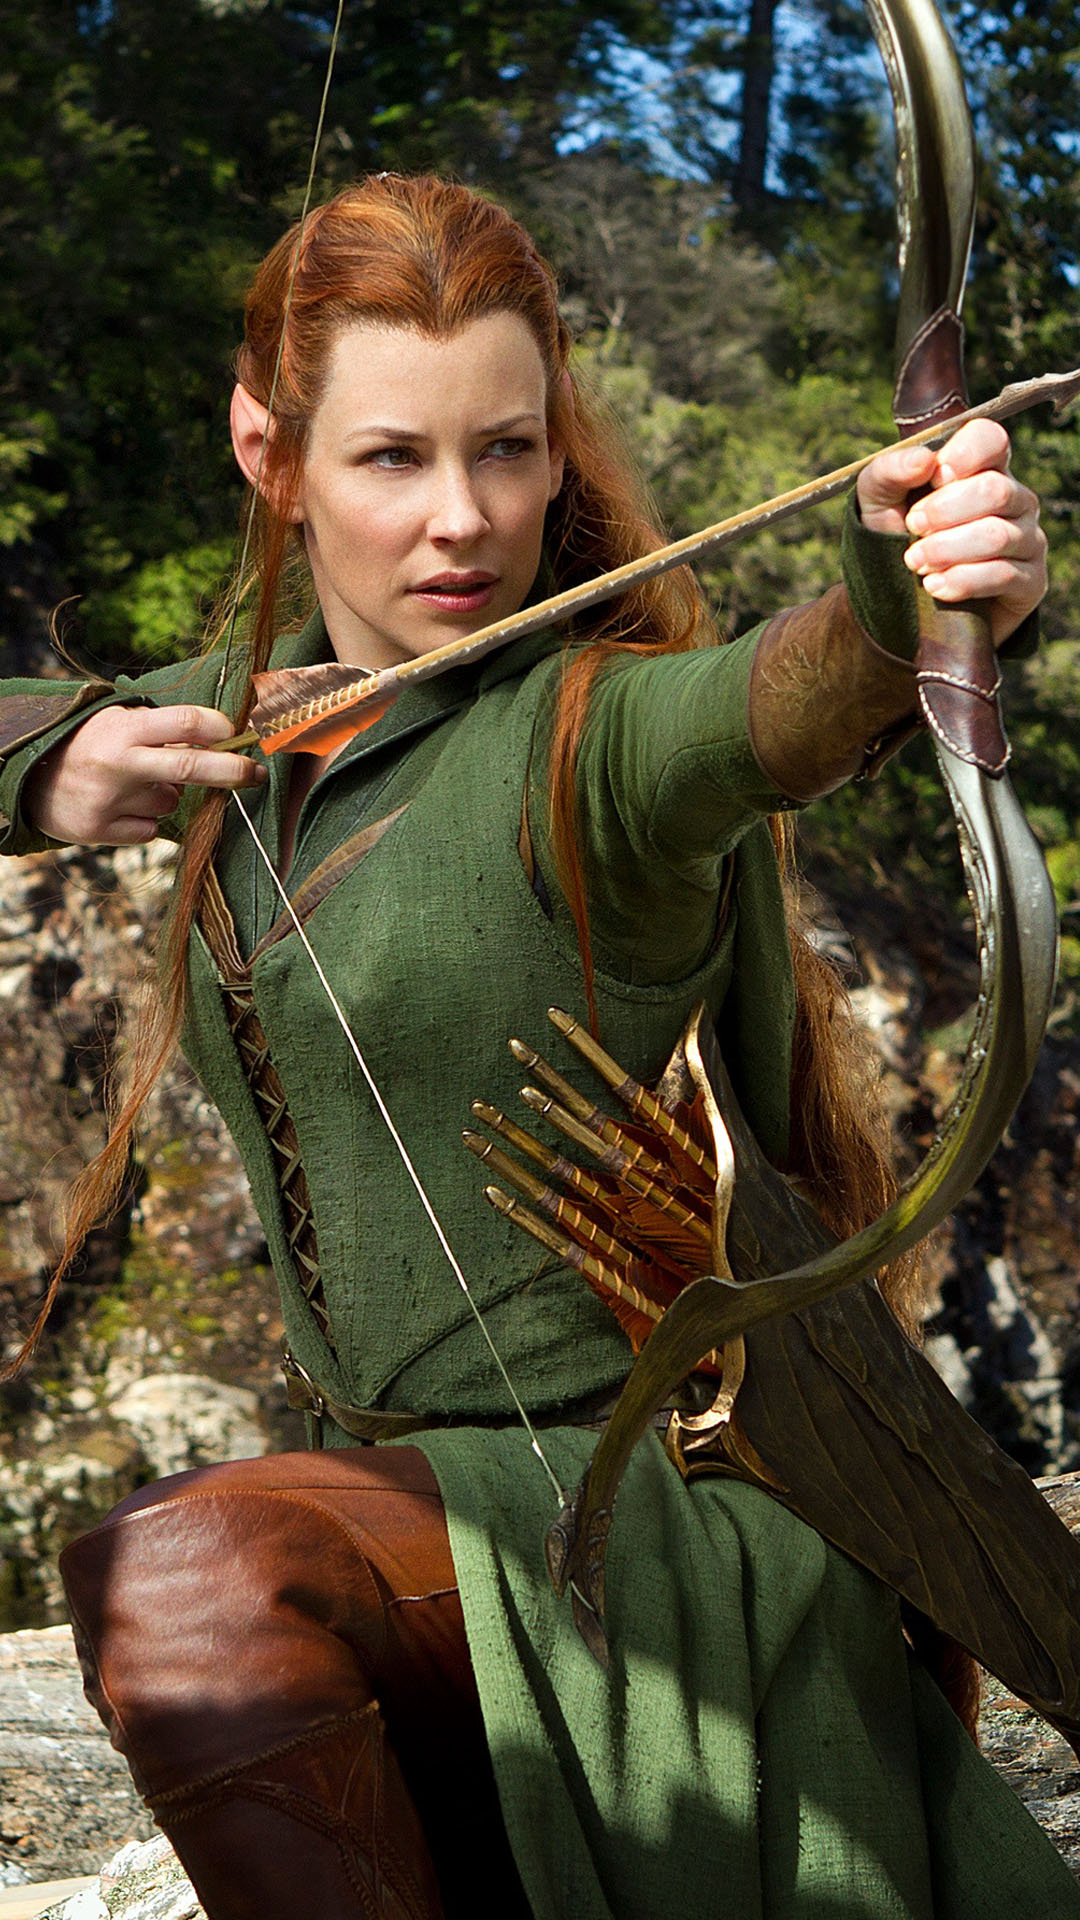 https://i0.wp.com/www.freeapplewallpapers.com/wp-content/uploads/2015/01/Tauriel-in-Hobbit.jpg